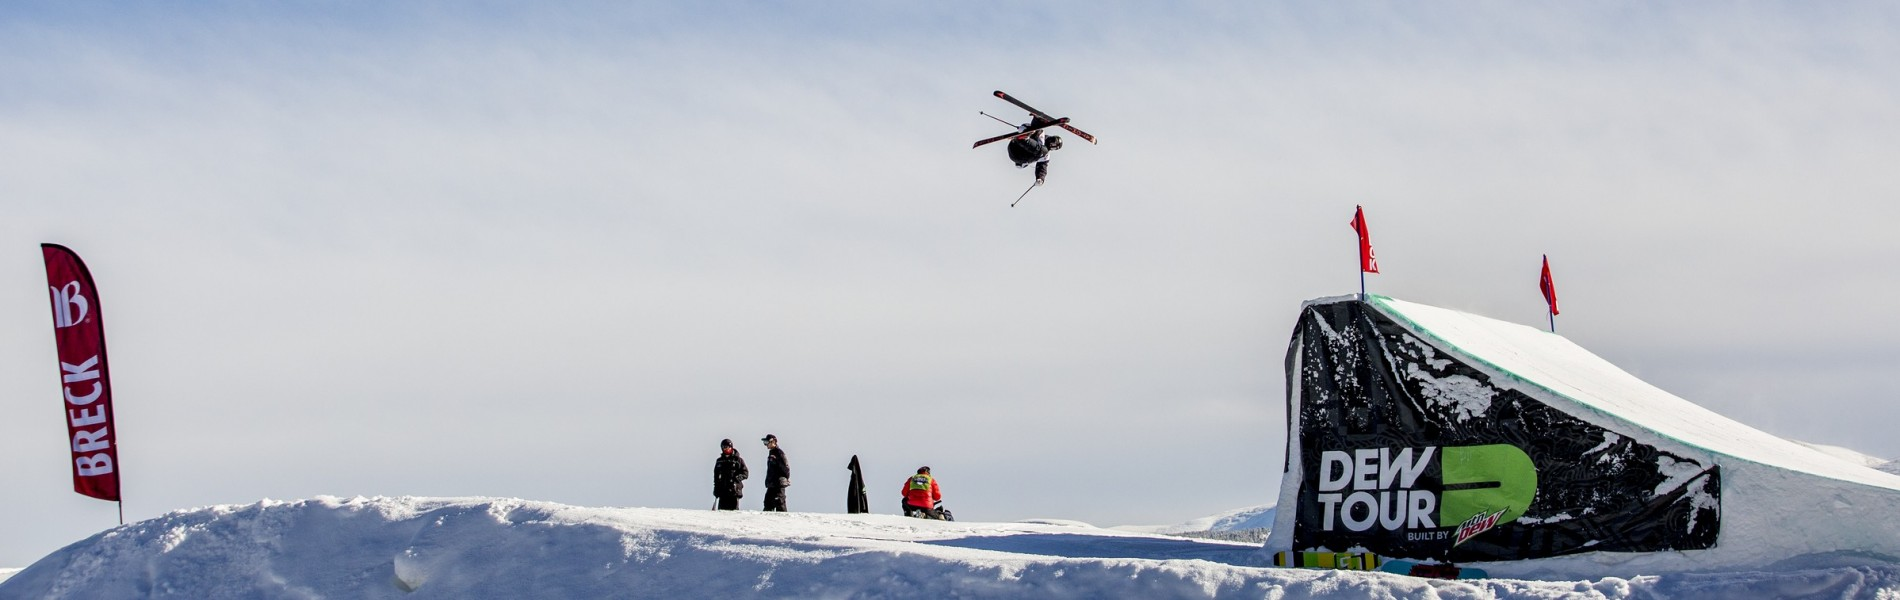 Gus Kenworthy at the Winter Dew Tour in Breckenridge, CO